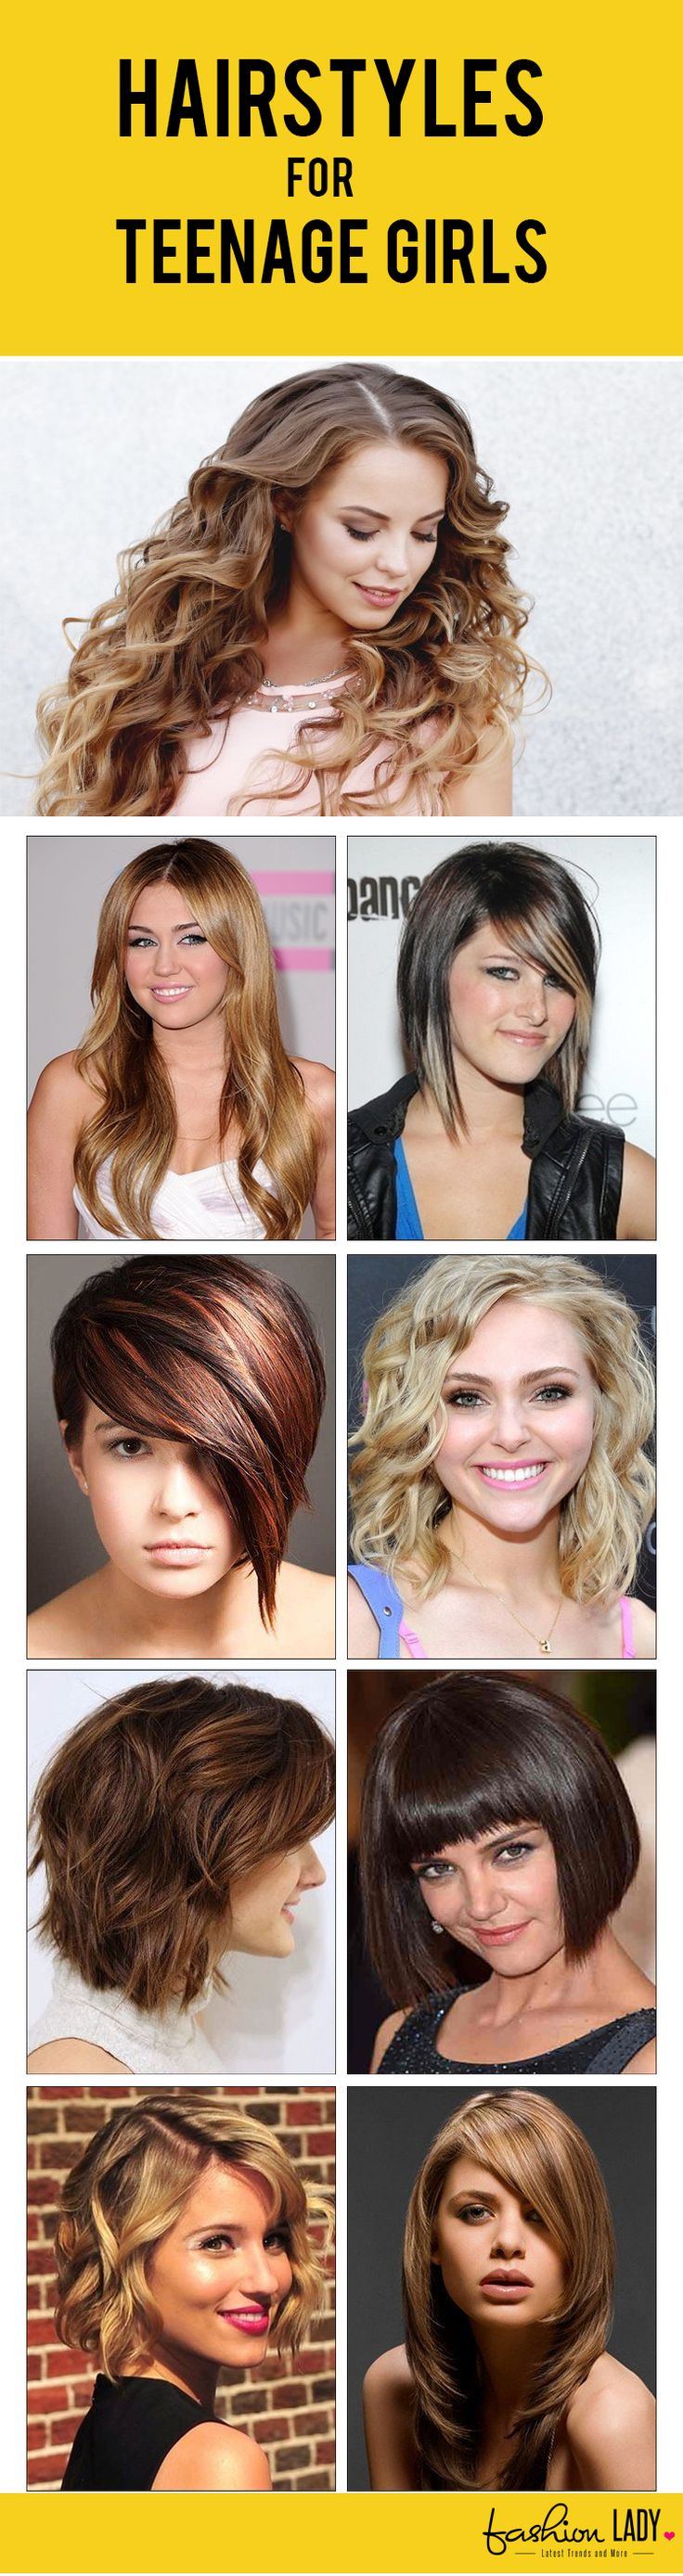 1540 best Hairstyles images on Pinterest